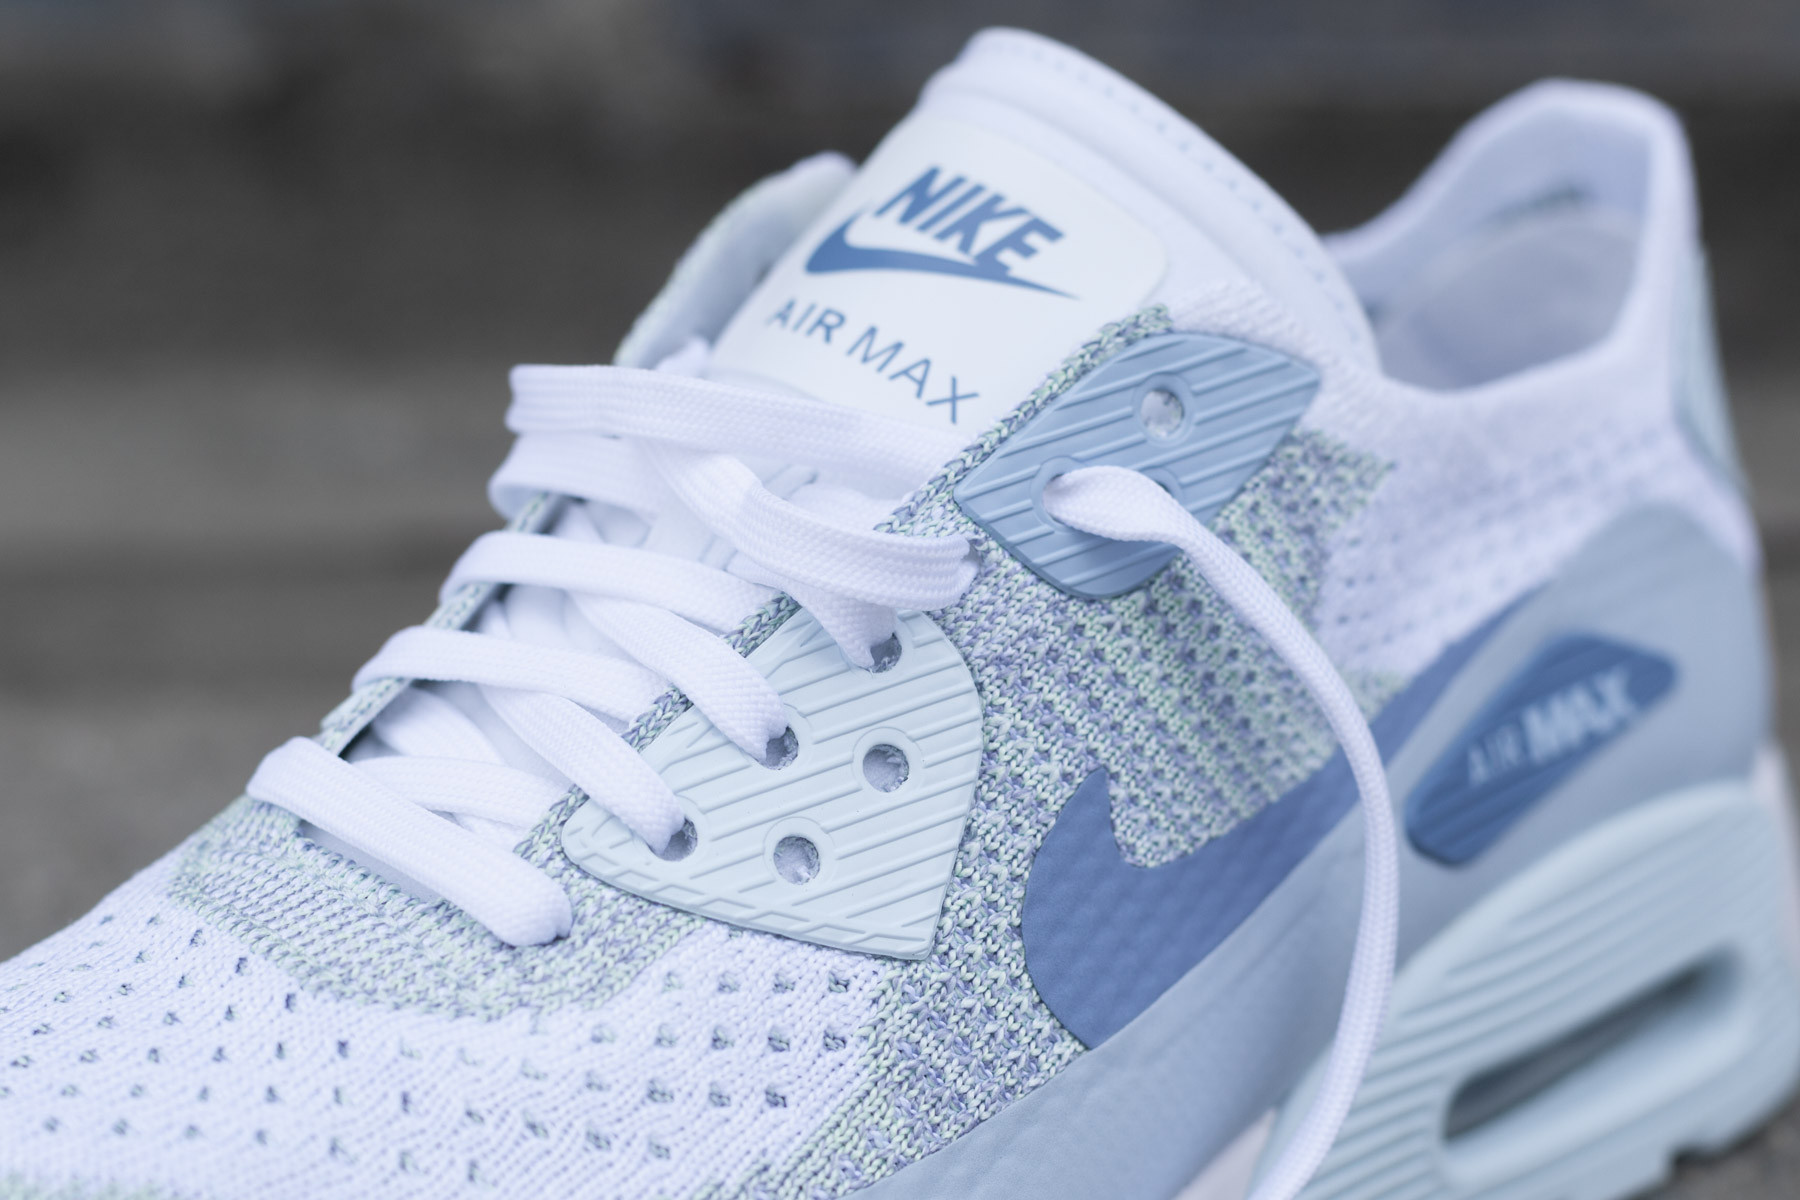 55ec6d9a0db8 ... white glacier blue work blue light armory blue trainer uk d0592 d4de6   reduced wmns nike air max 90 ultra 2.0 flyknit sneakers sneaker.no fdf3d  a6c69